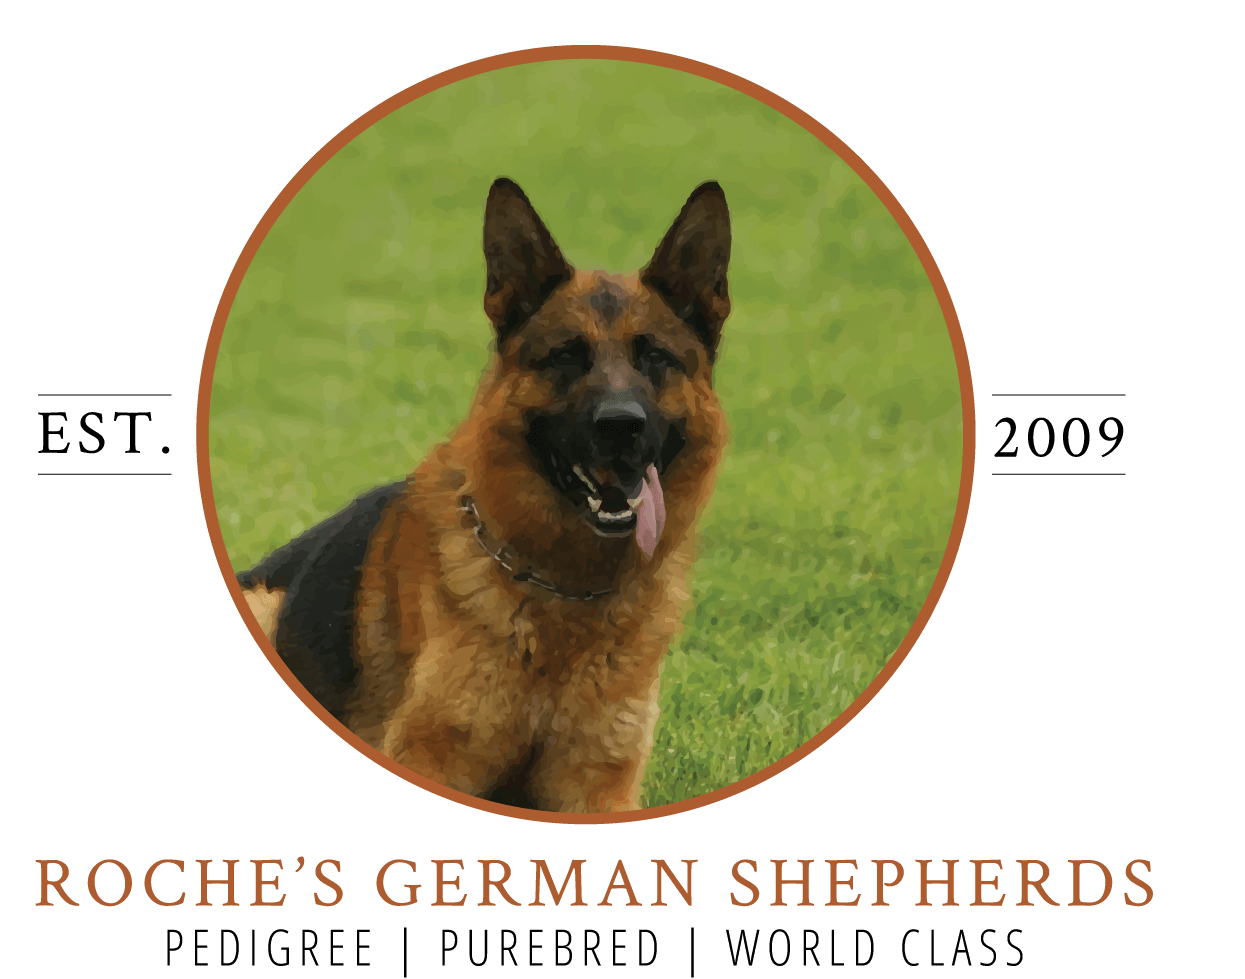 Roche's German Shepherds